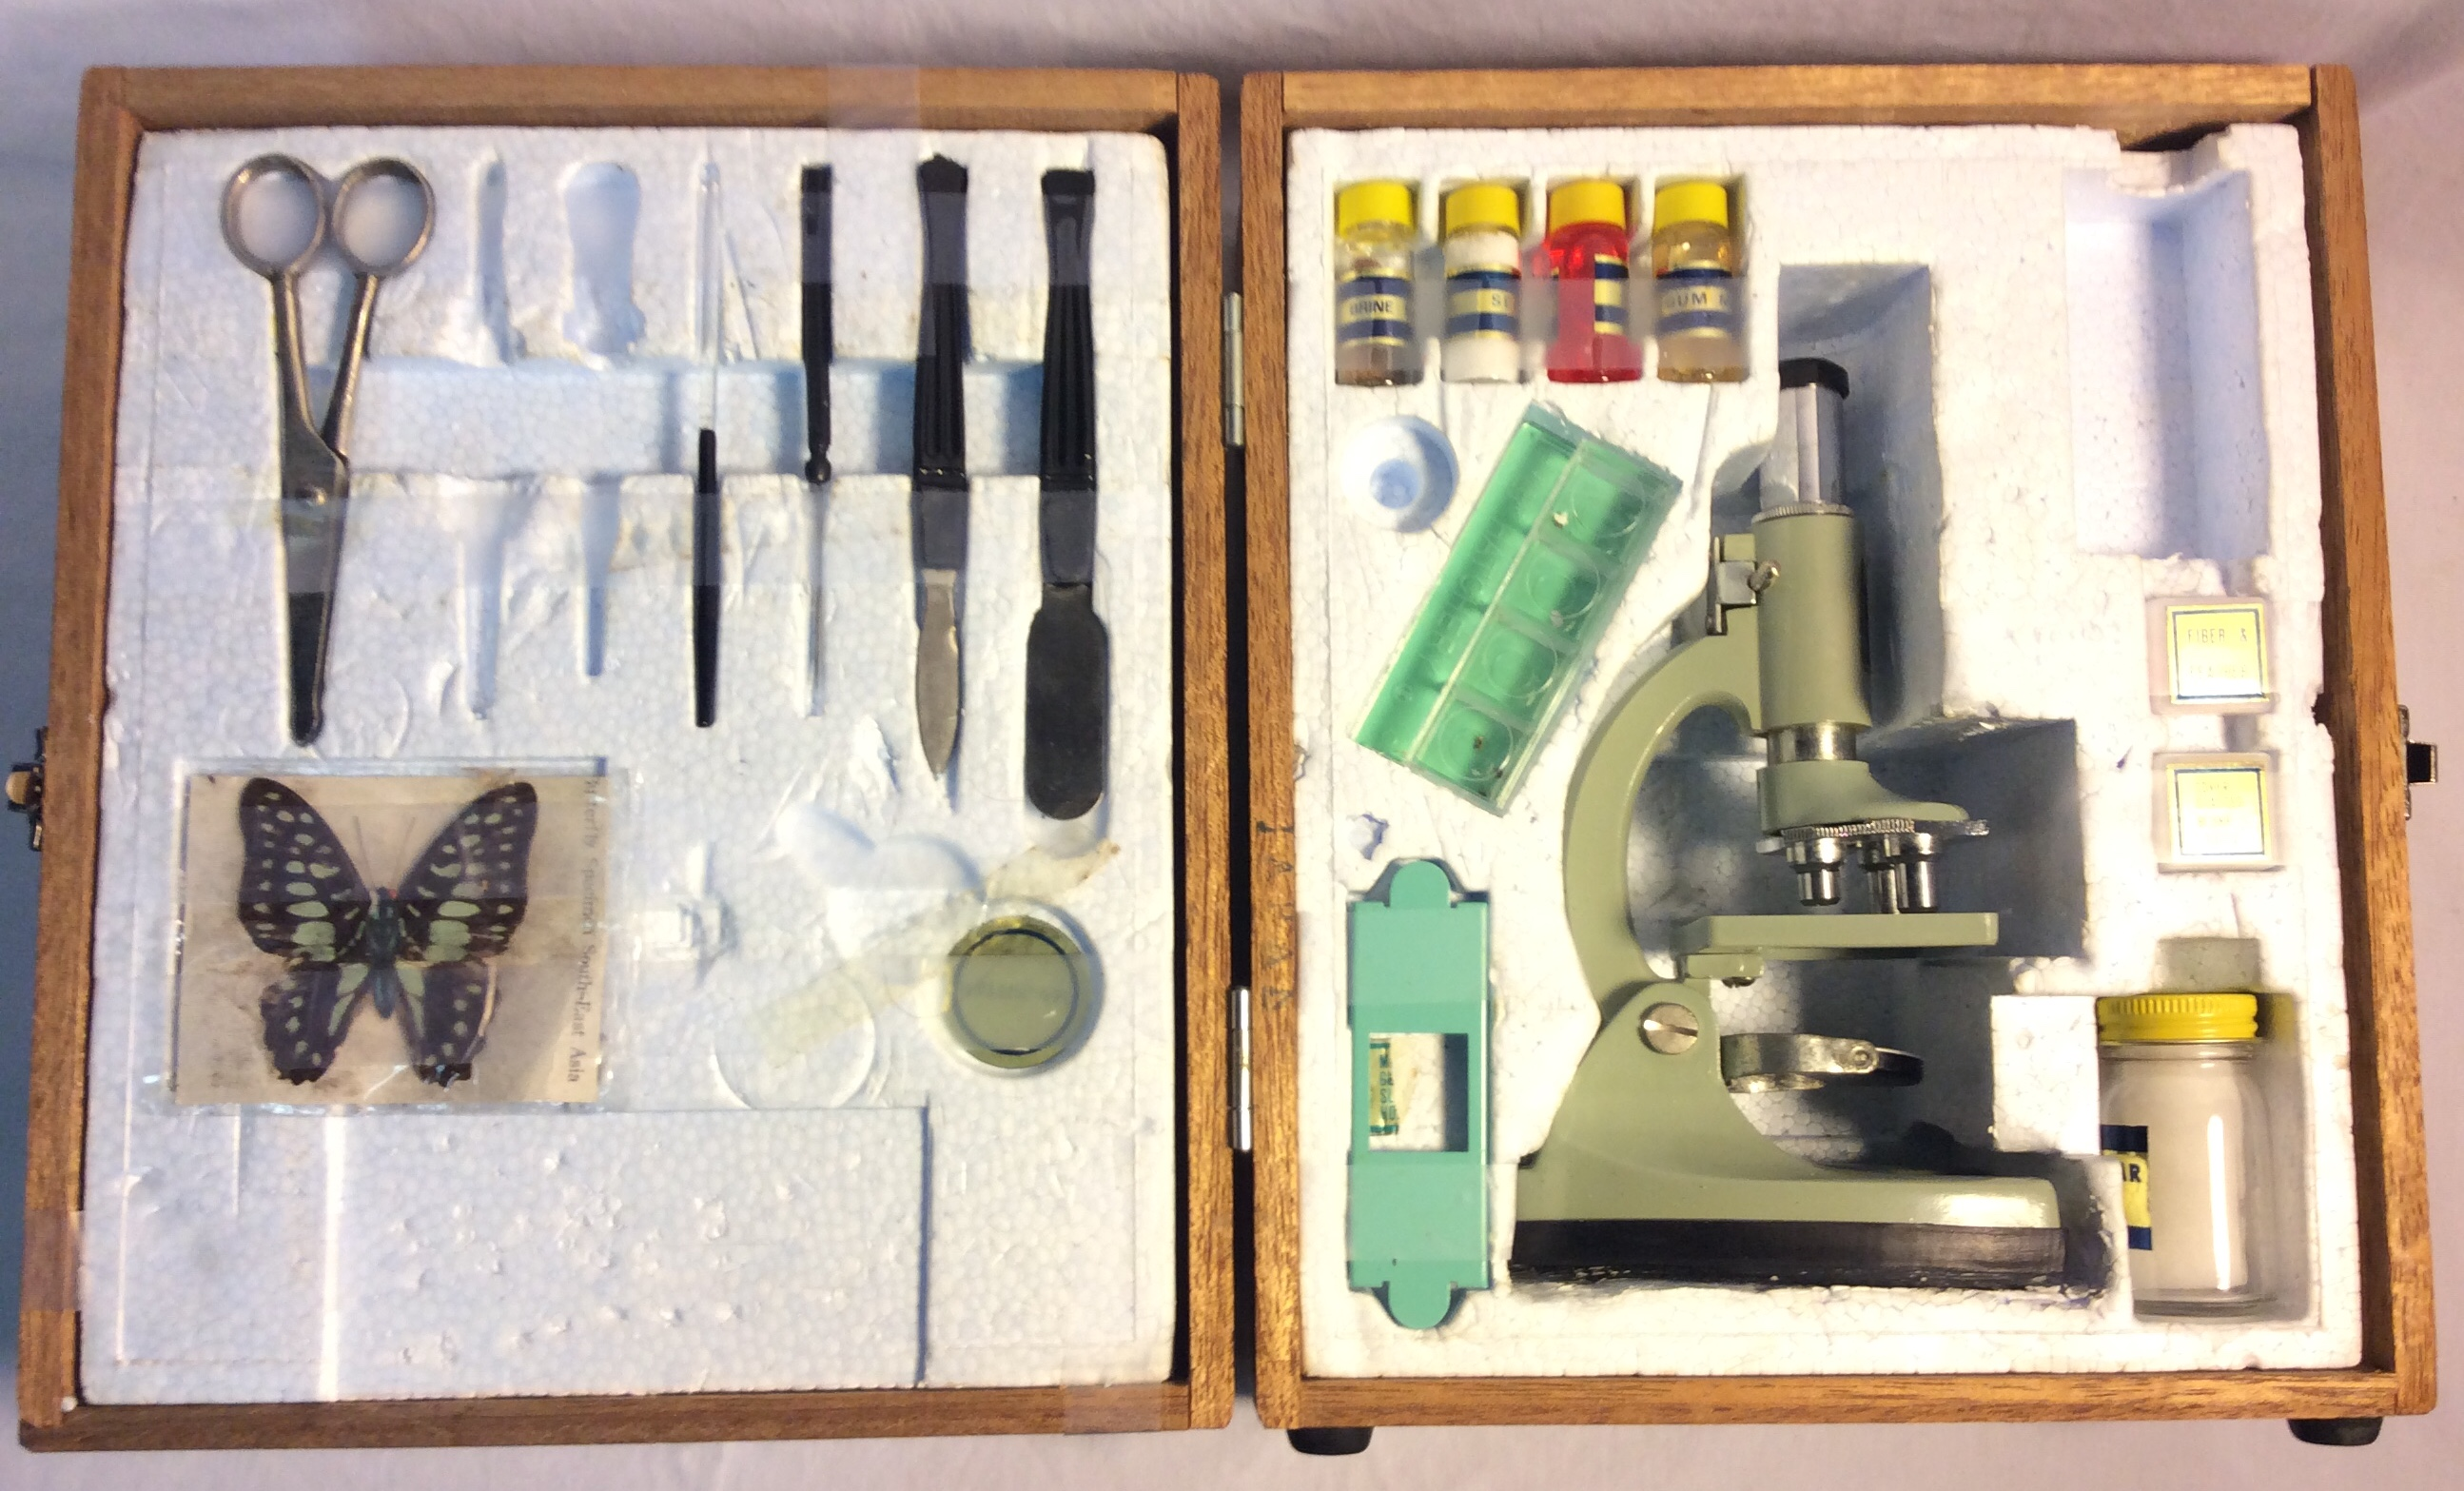 Tasco Deluxe Microscope kit